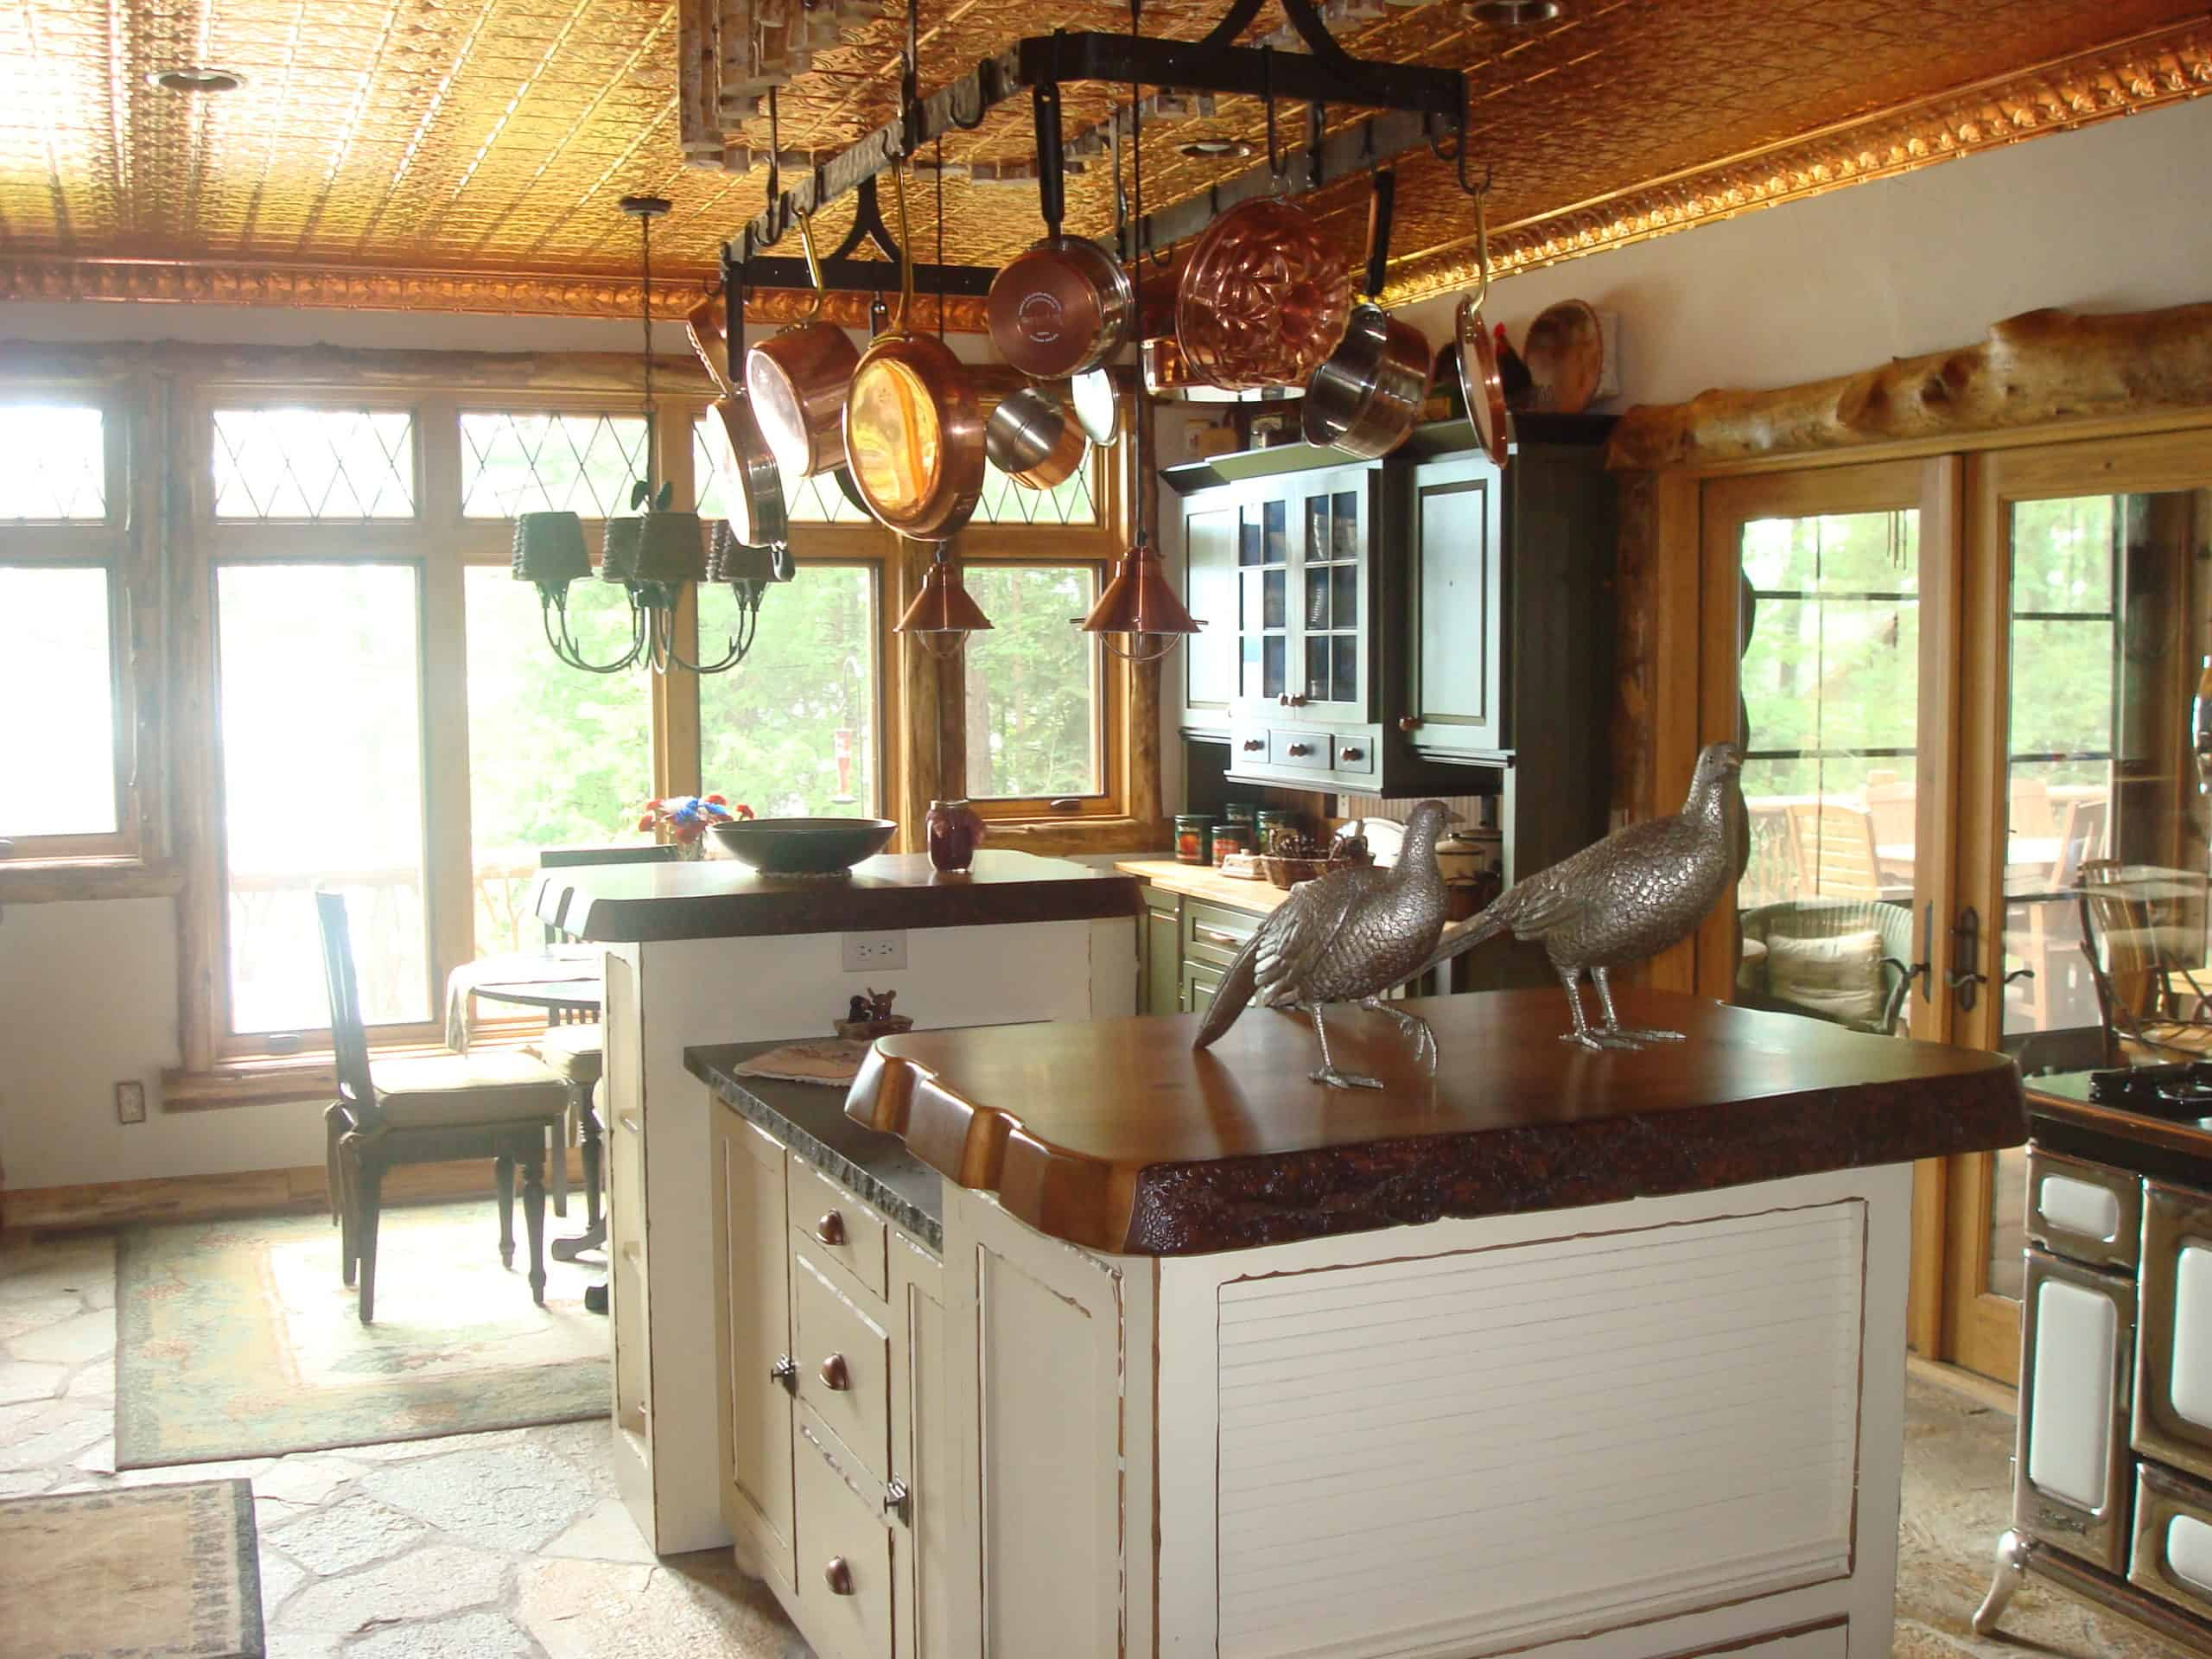 Rustic kitchen island shows distressed edges under live edge wooden tops and honed granite countertops